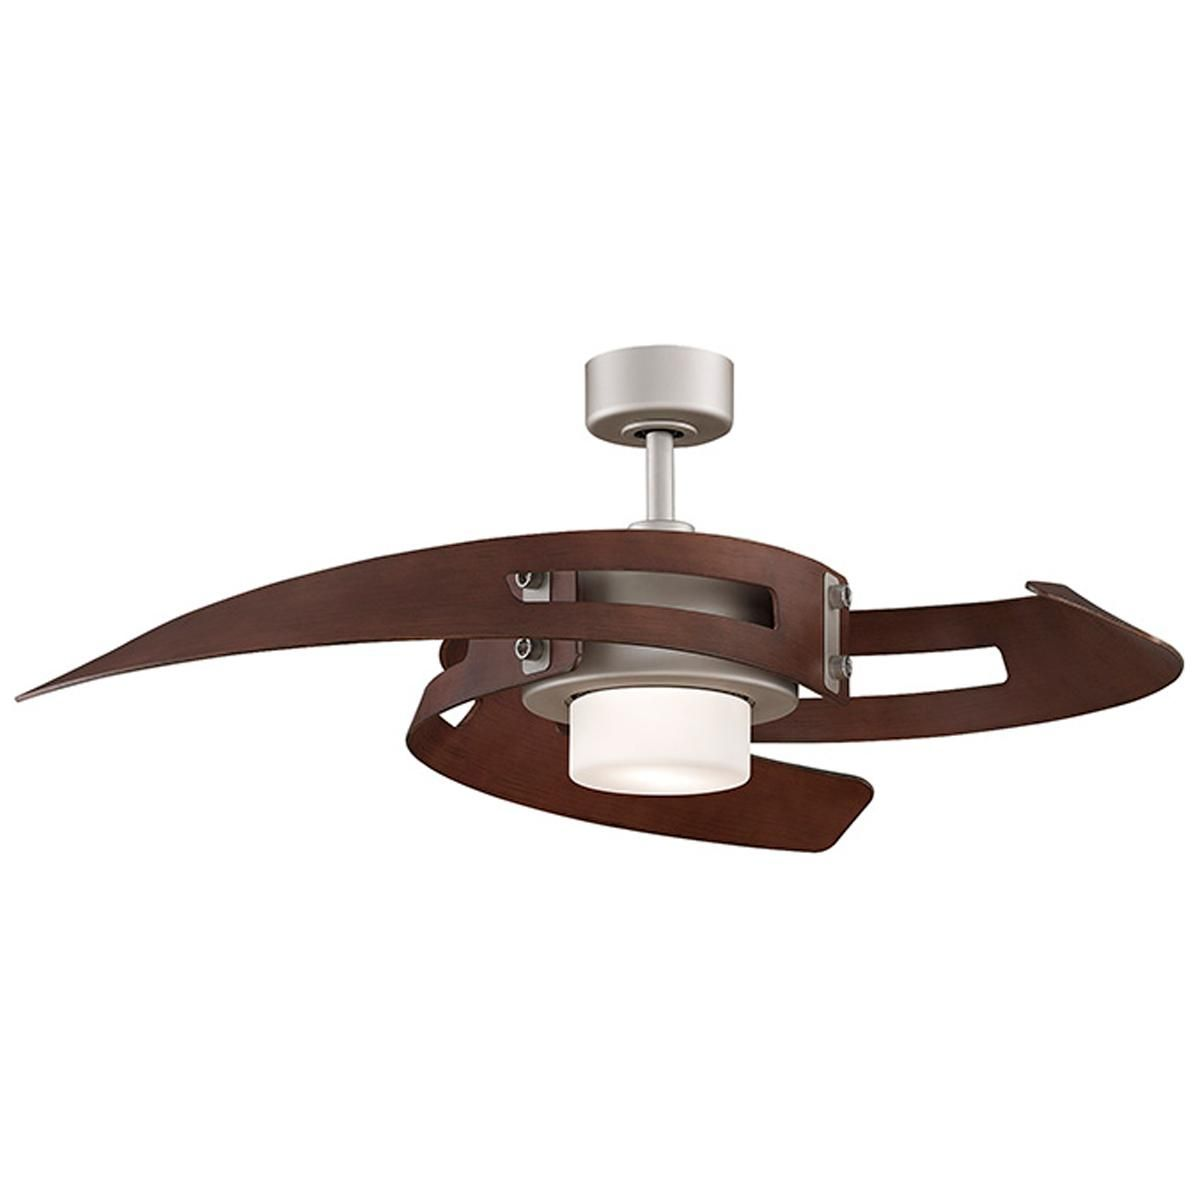 Curved Blades Ceiling Fan 2 Finishes Ceiling Fan With Light